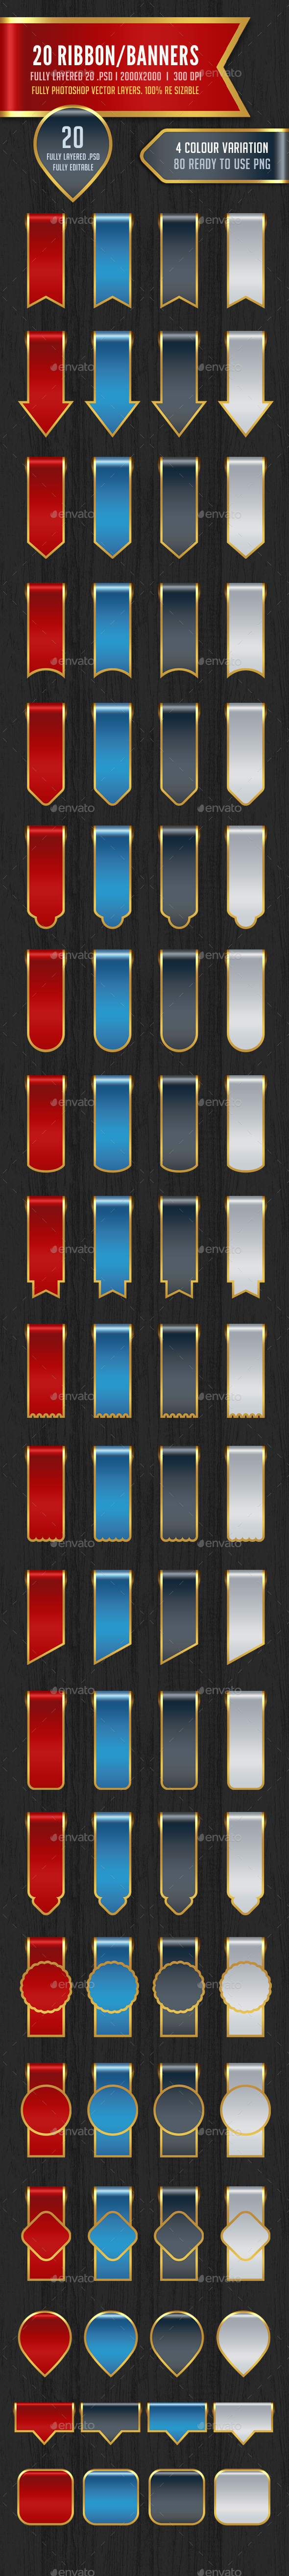 80 Ribbon / Banners - Badges & Stickers Web Elements